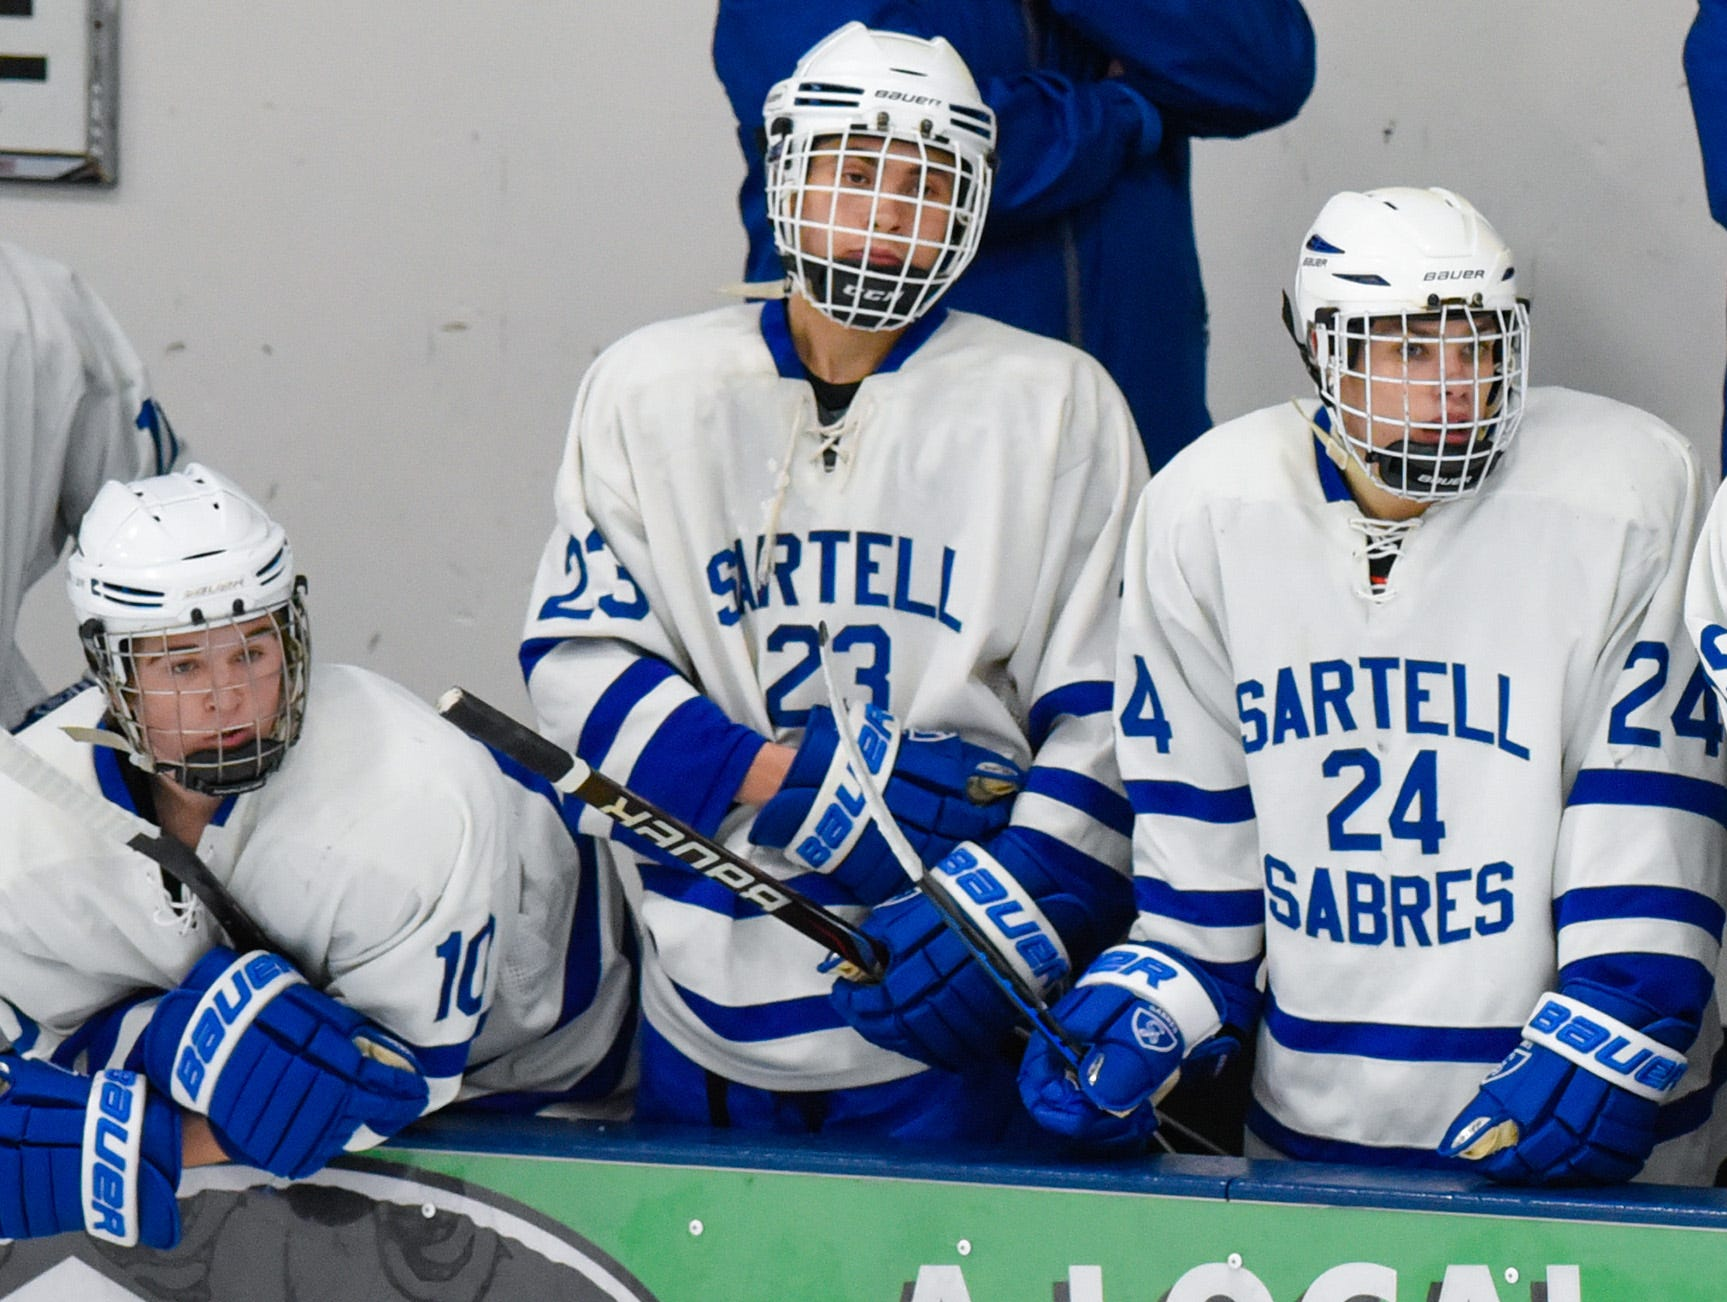 Sartell players watch from the bench during the first period Tuesday, Dec. 18, at the Bernick's Arena in Sartell.